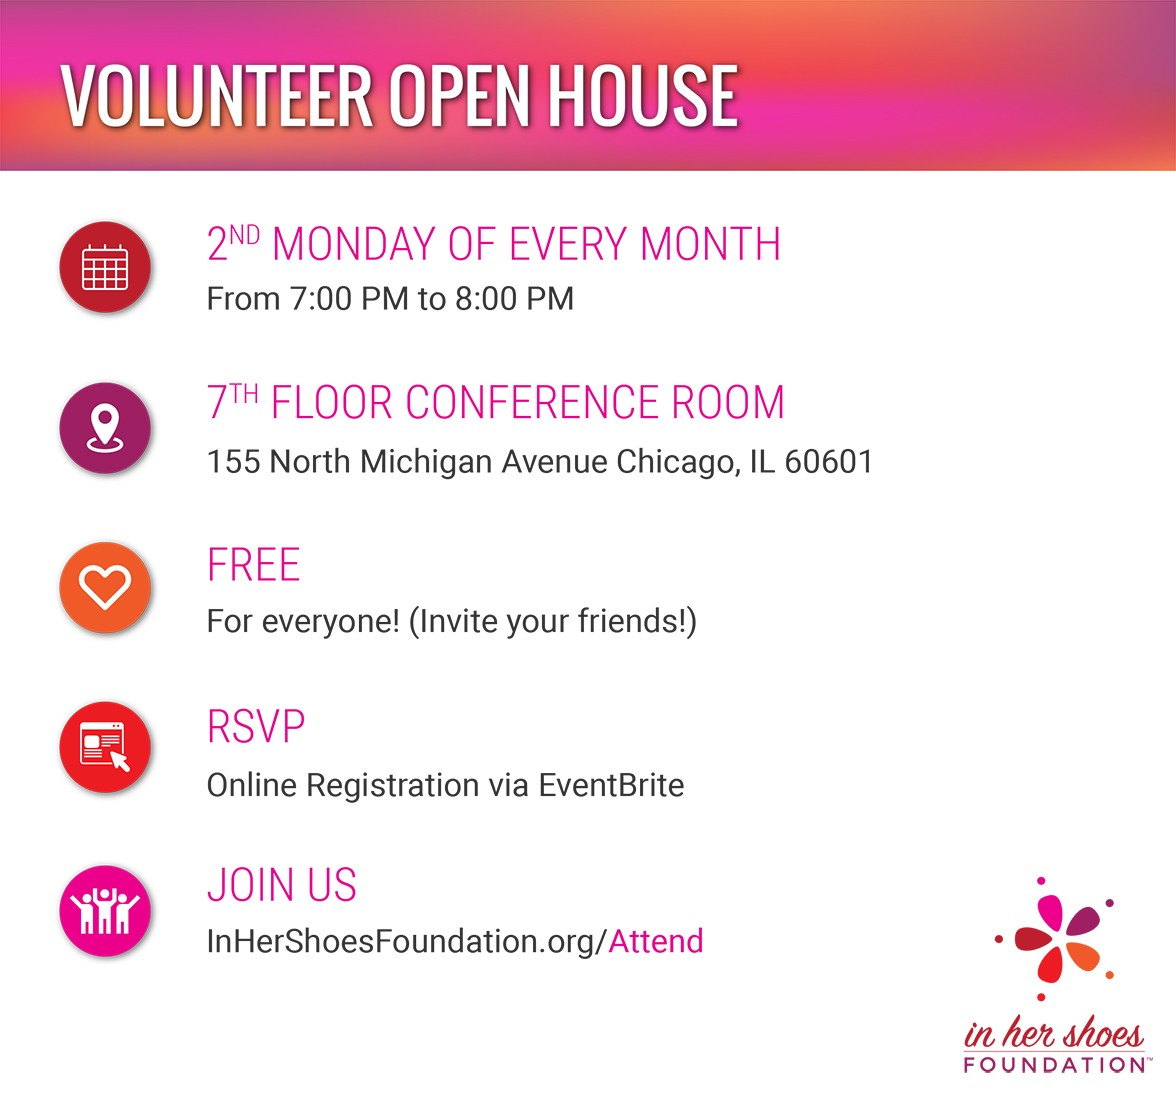 Join us for our Monthly Volunteer Meeting every 2nd Monday of the Month from 7-8pm at our 155 N Michigan Ave office location. Come meet new and old volunteers and learn about our In Her Shoes Foundation. RSVP REQUIRED. Space is Limited.